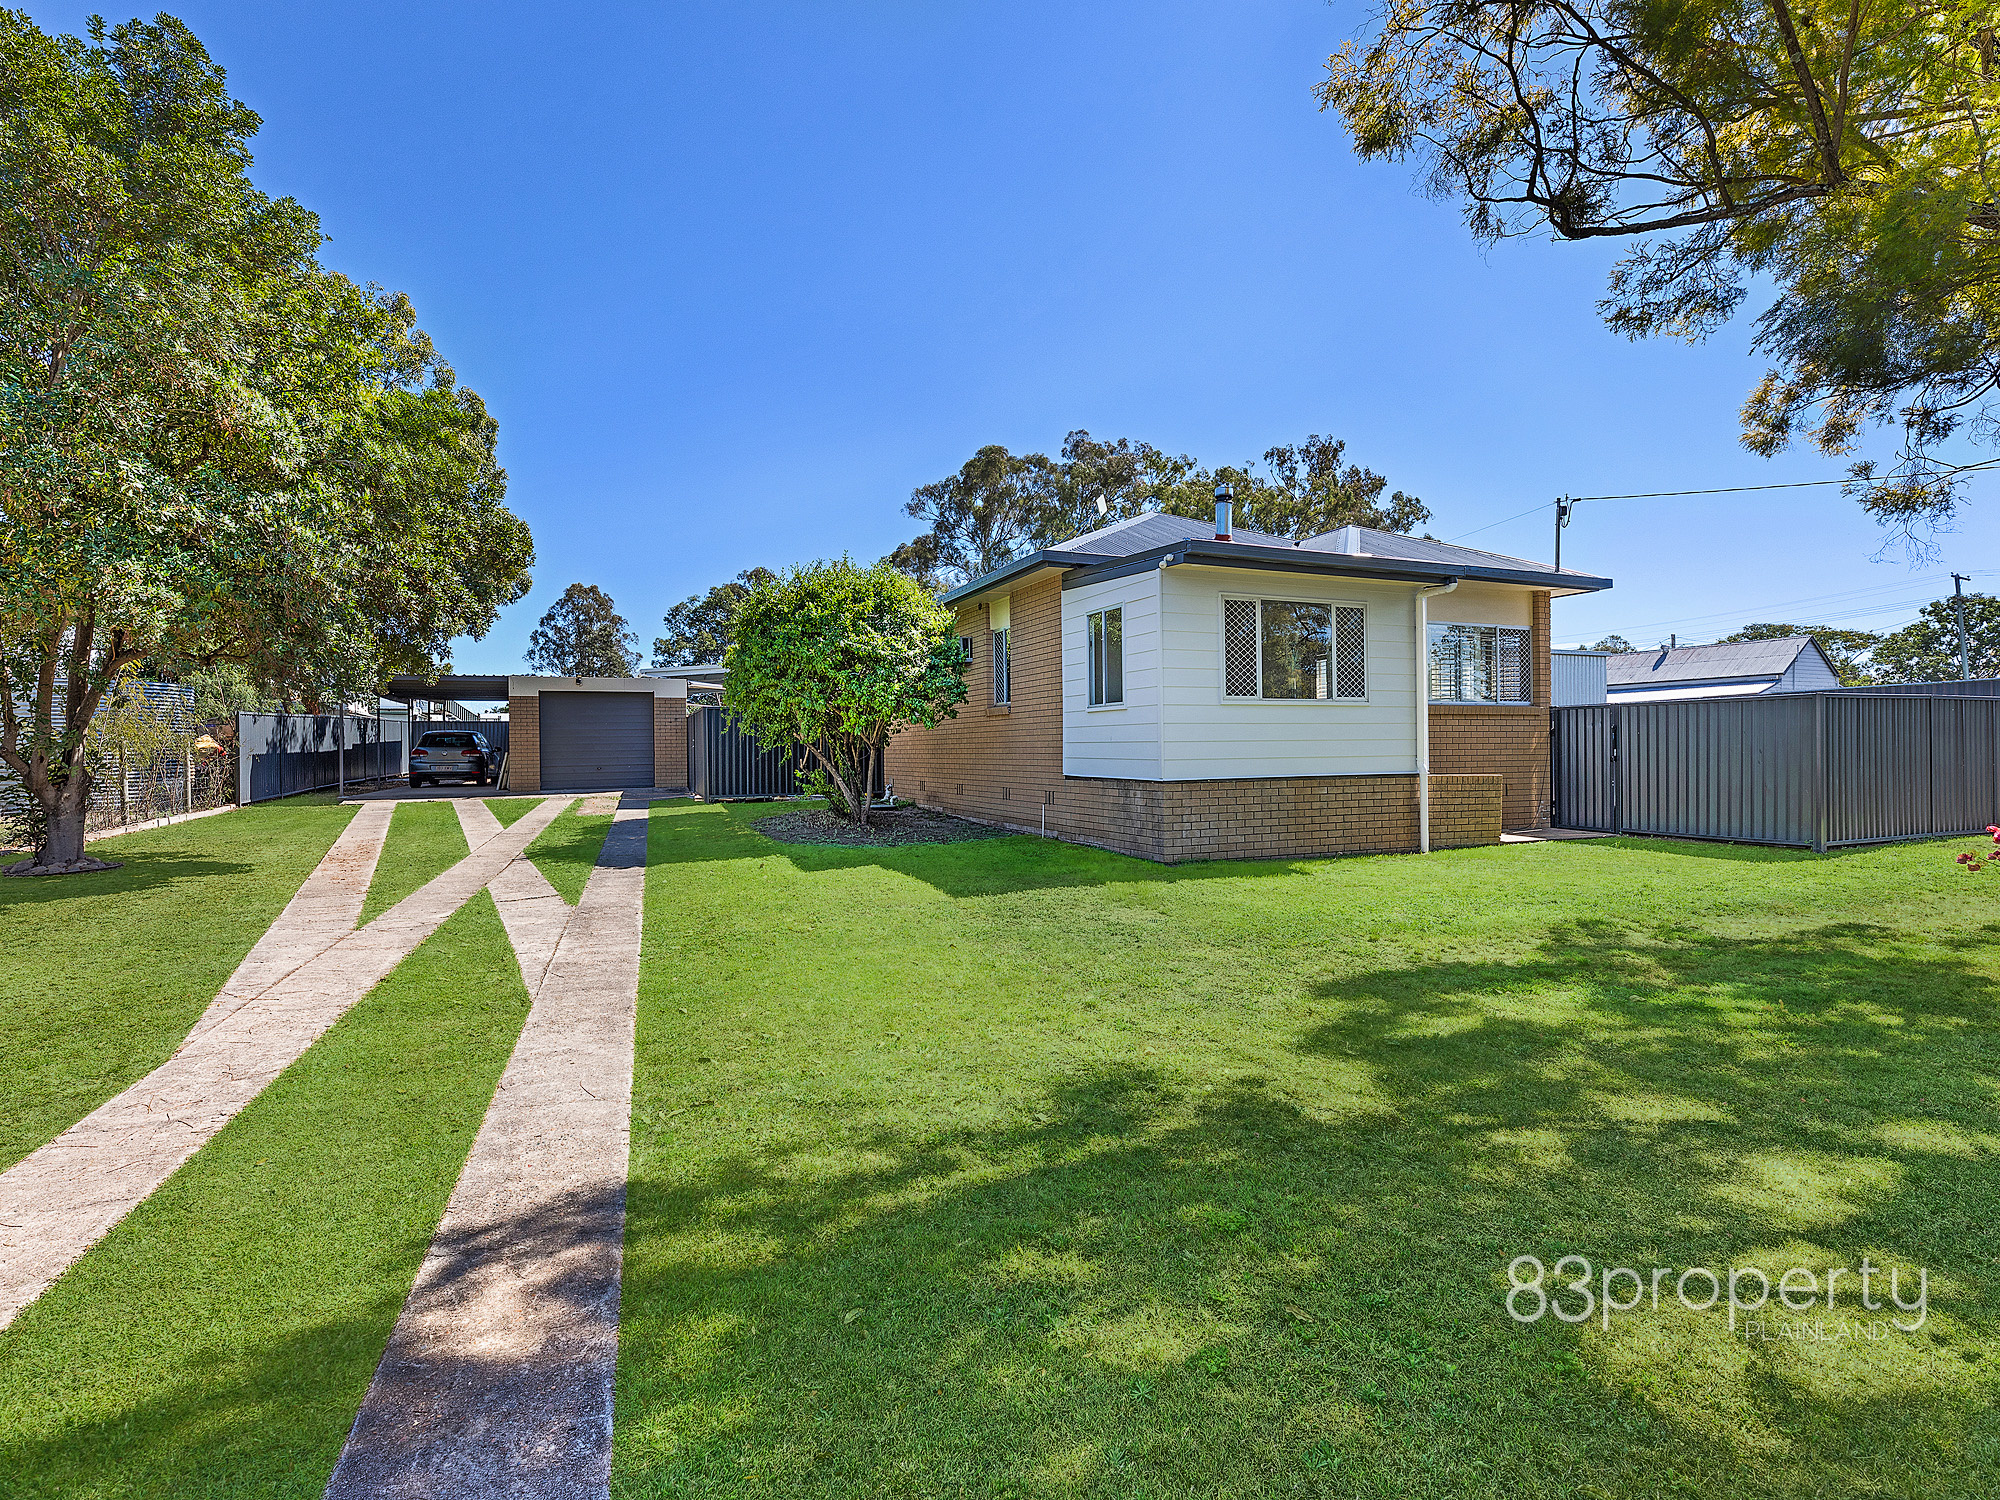 Ticks All The Boxes – This Home Has It All!